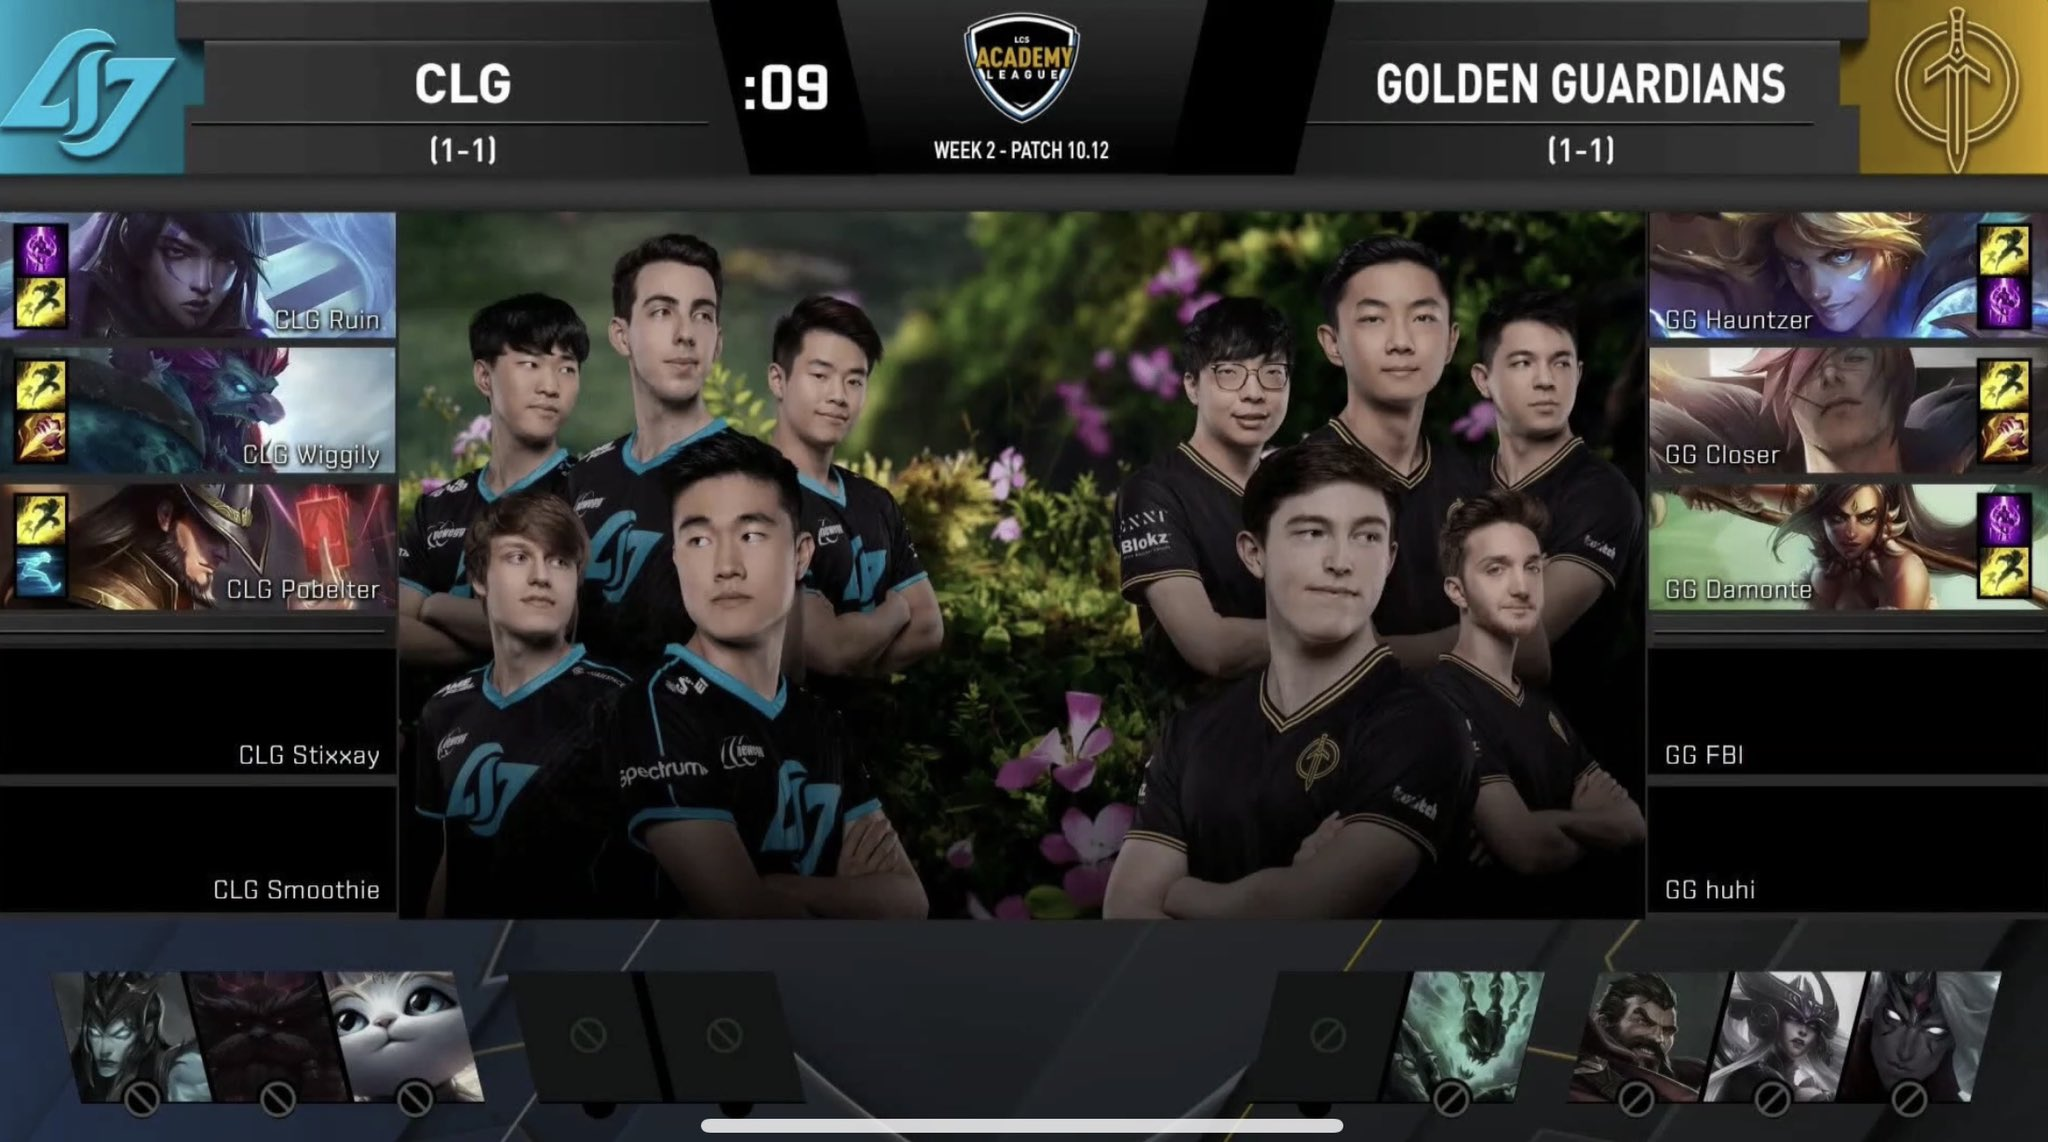 The LCS production has had a sharp drop in quality, including the wrong teams being shown in graphics...